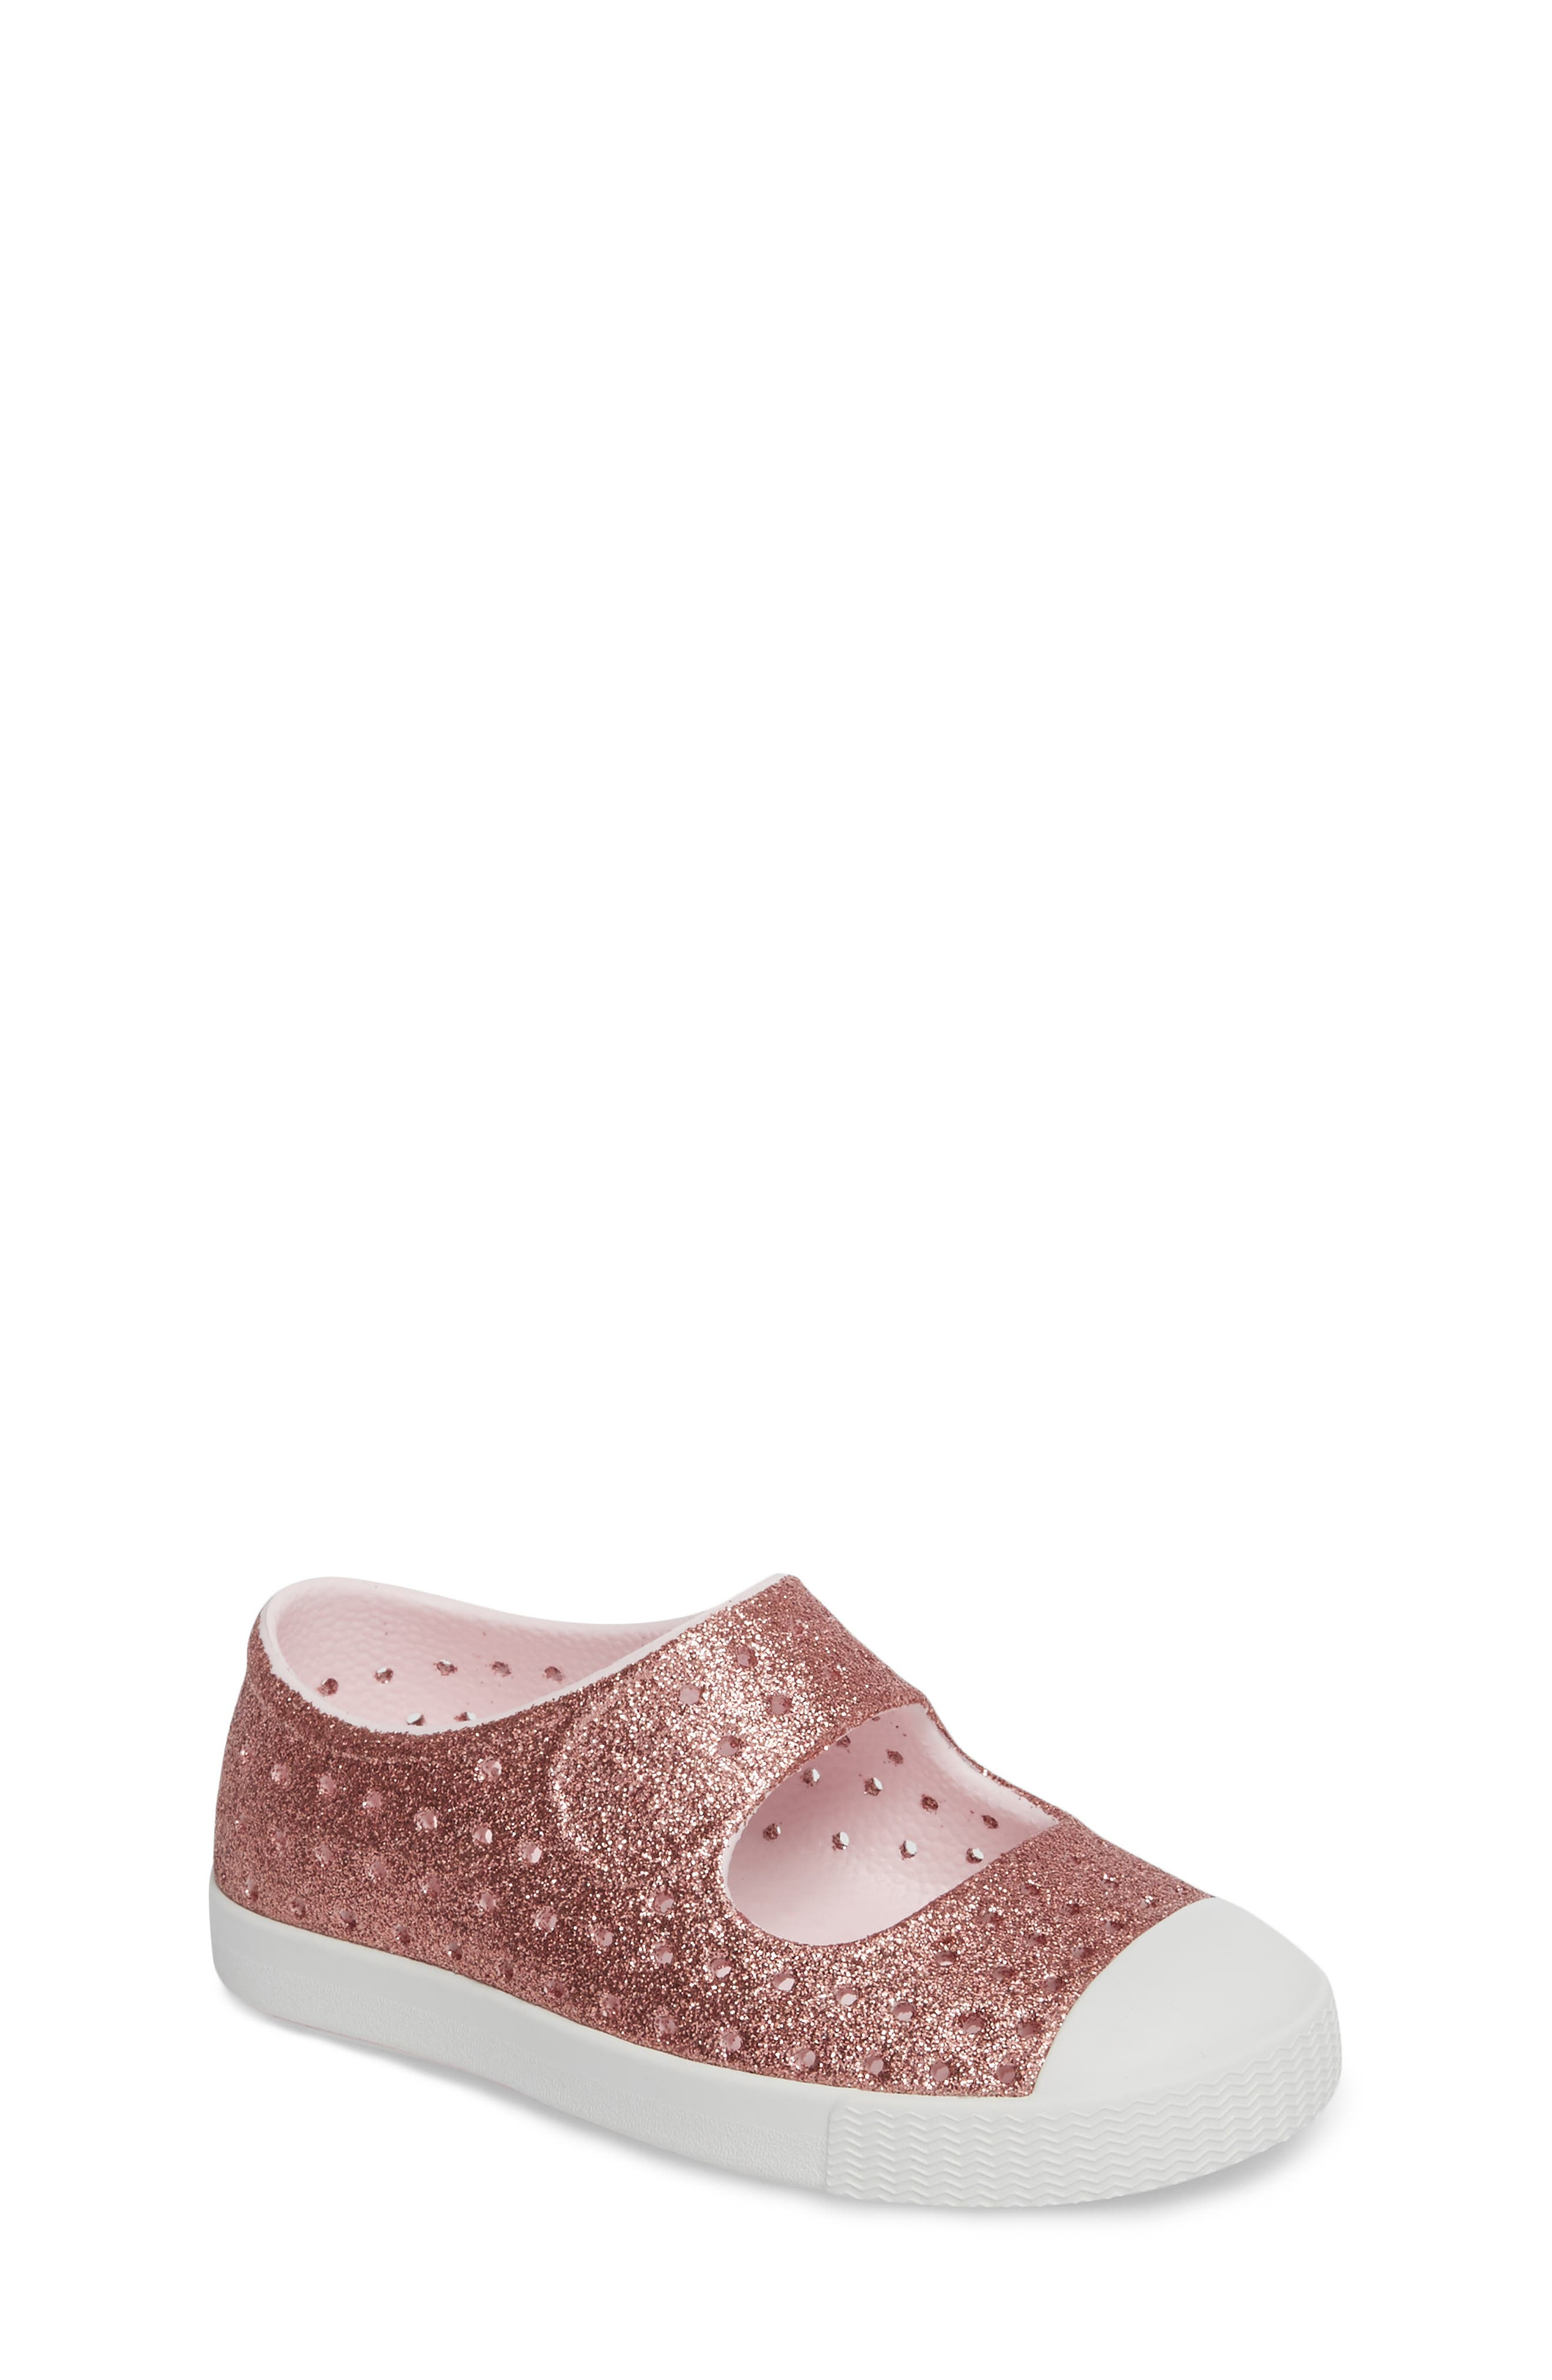 Main Image - Native Shoes Juniper Bling Glitter Perforated Mary Jane (Baby, Walker, Toddler & Little Kid)